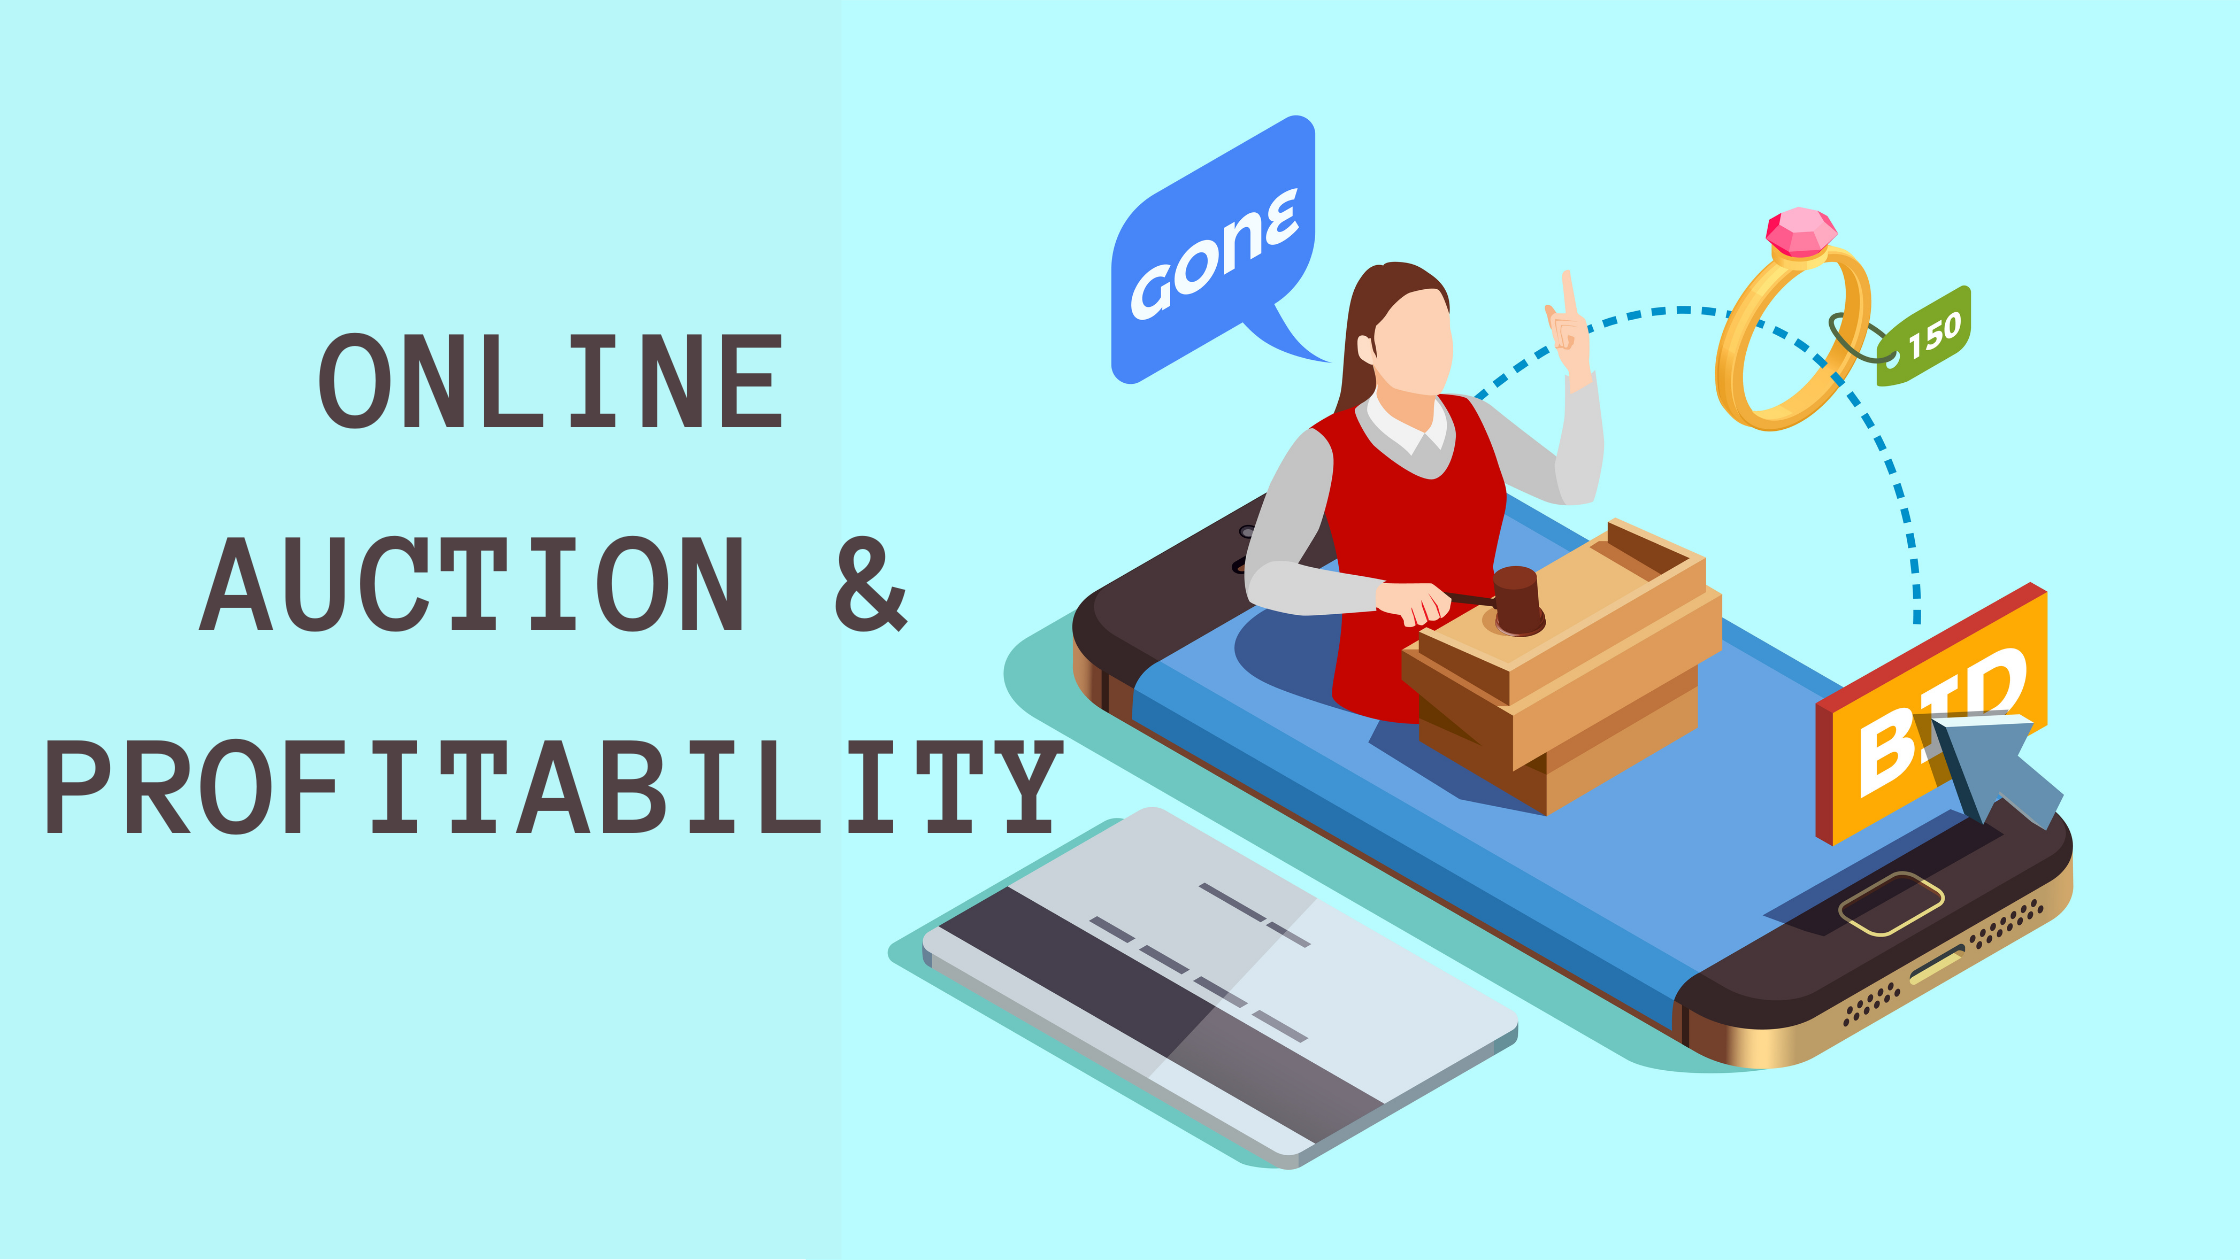 What is online auction and how much profitable is it